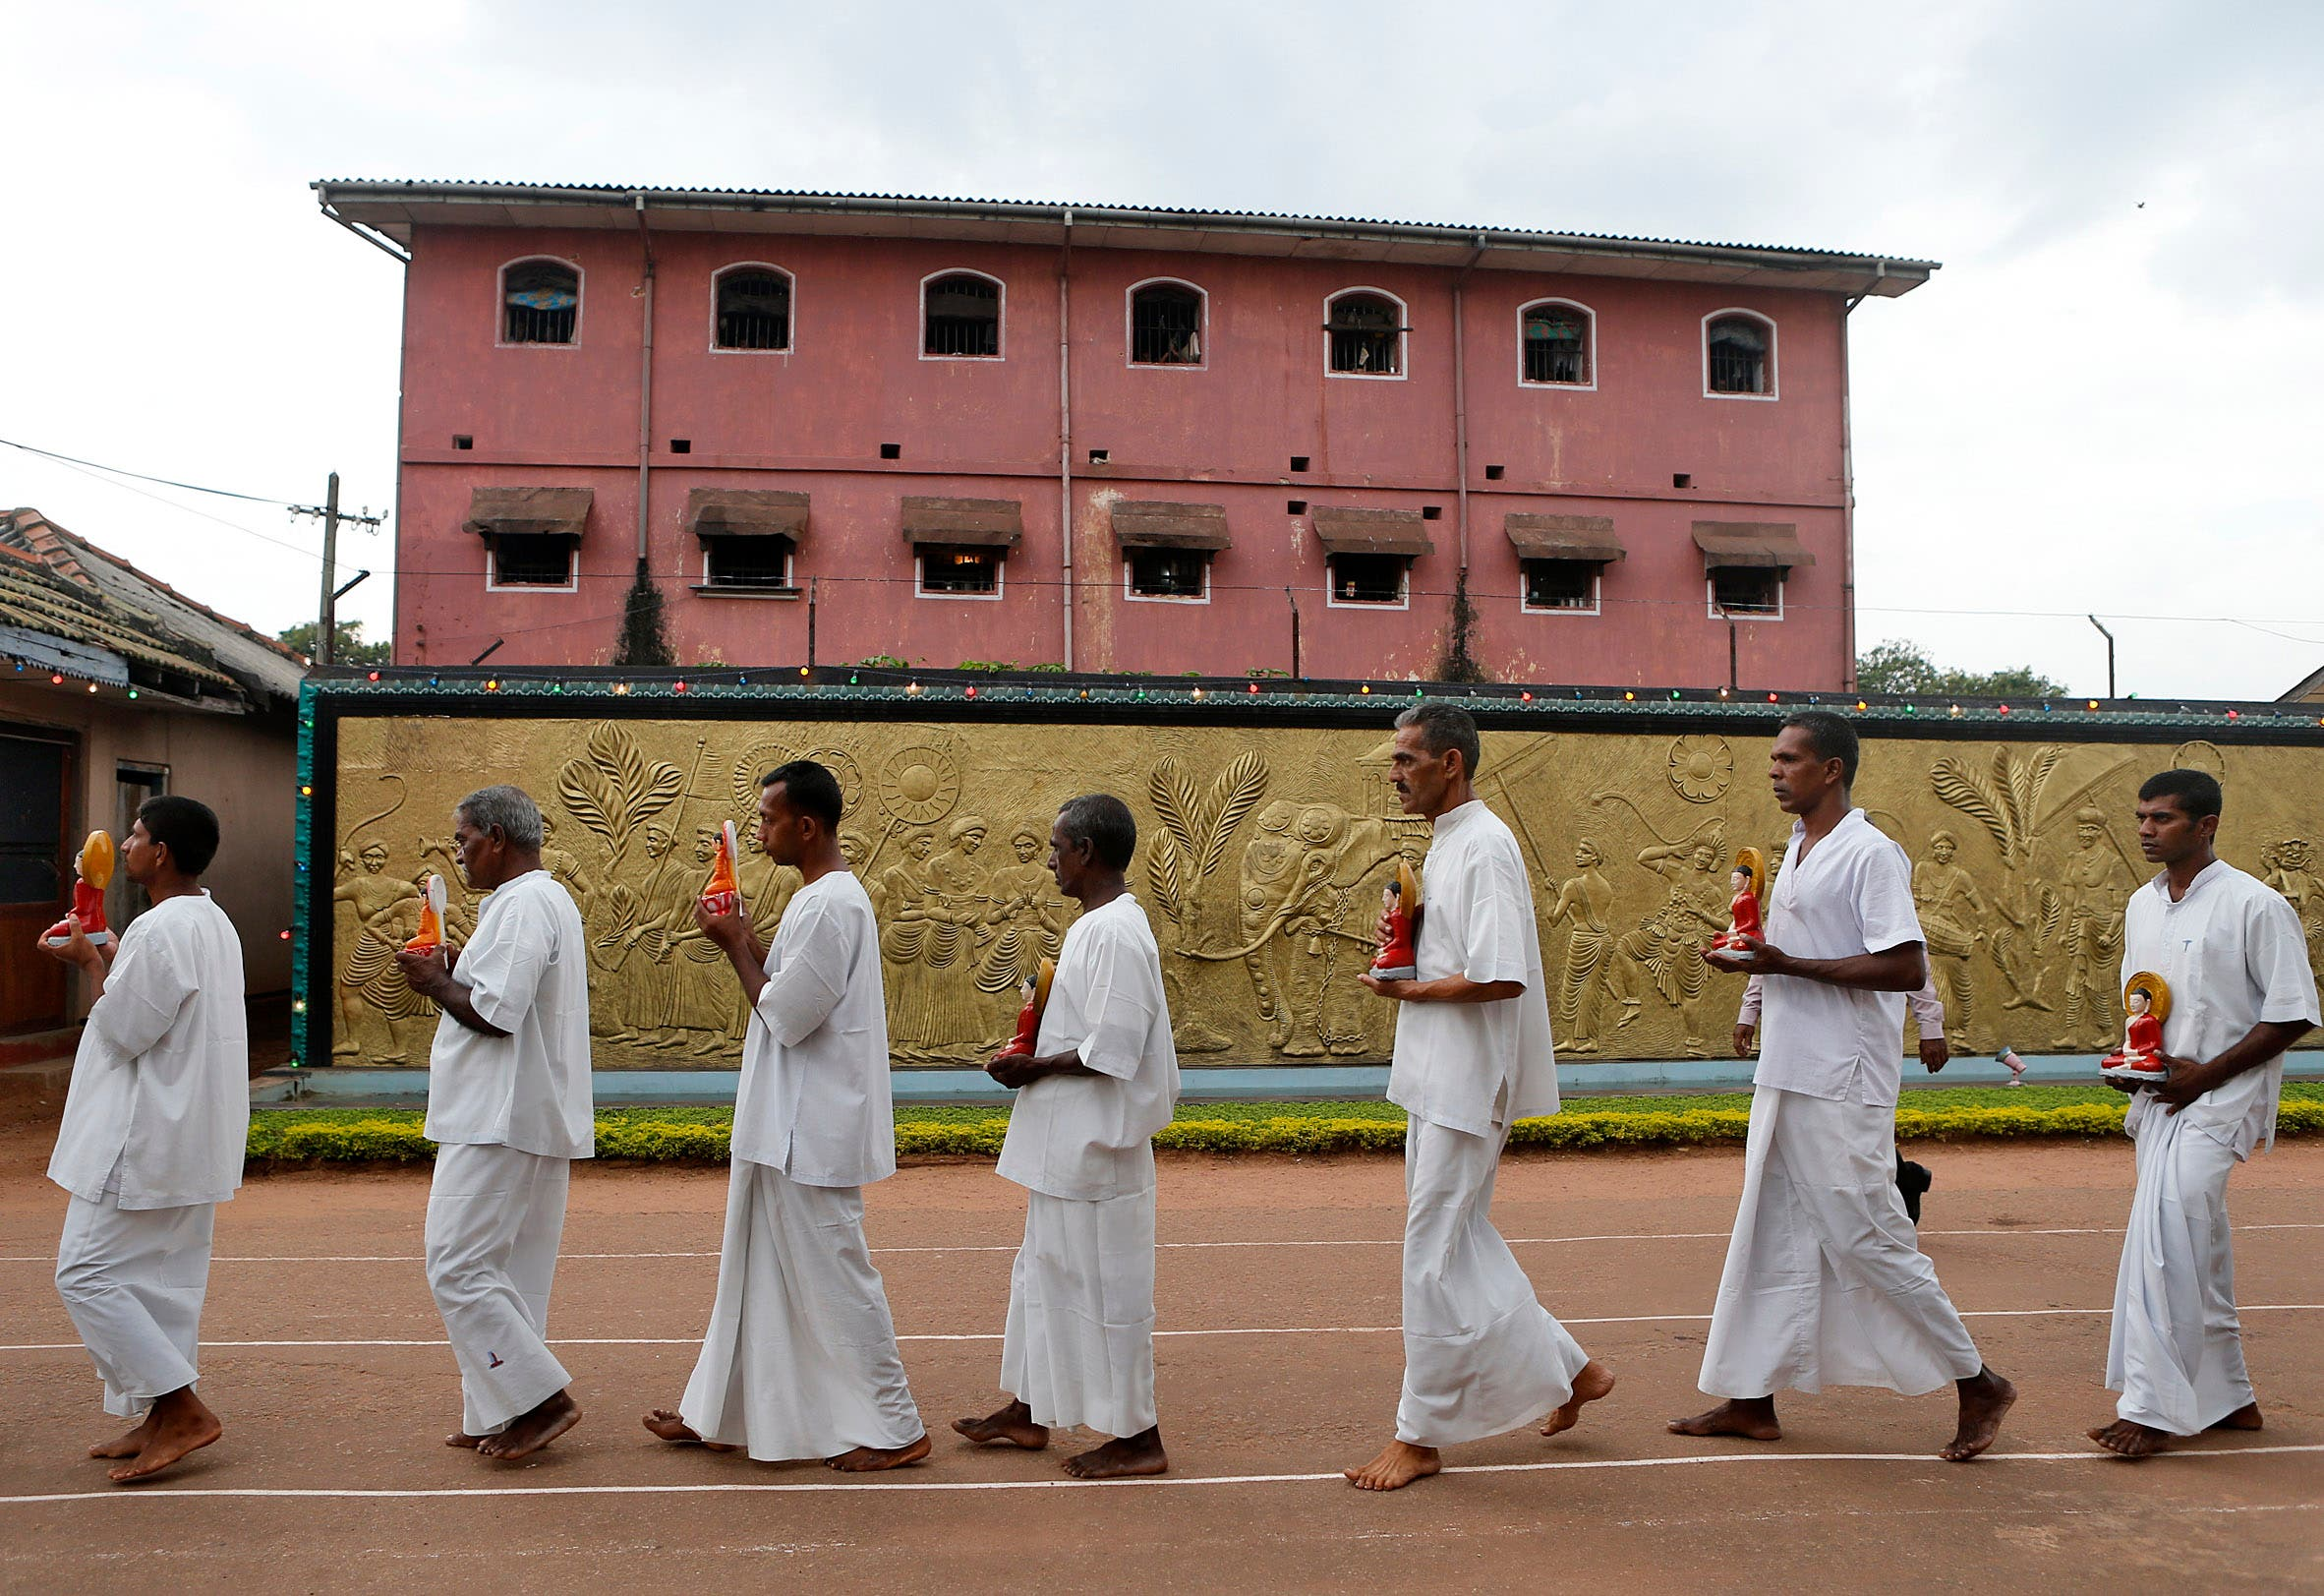 Sri Lankan inmates of the Welikada prison carry statues of Lord Buddha as they take part in a religious ceremony on the eve of new year on Monday, Dec. 31, 2012 (AP)